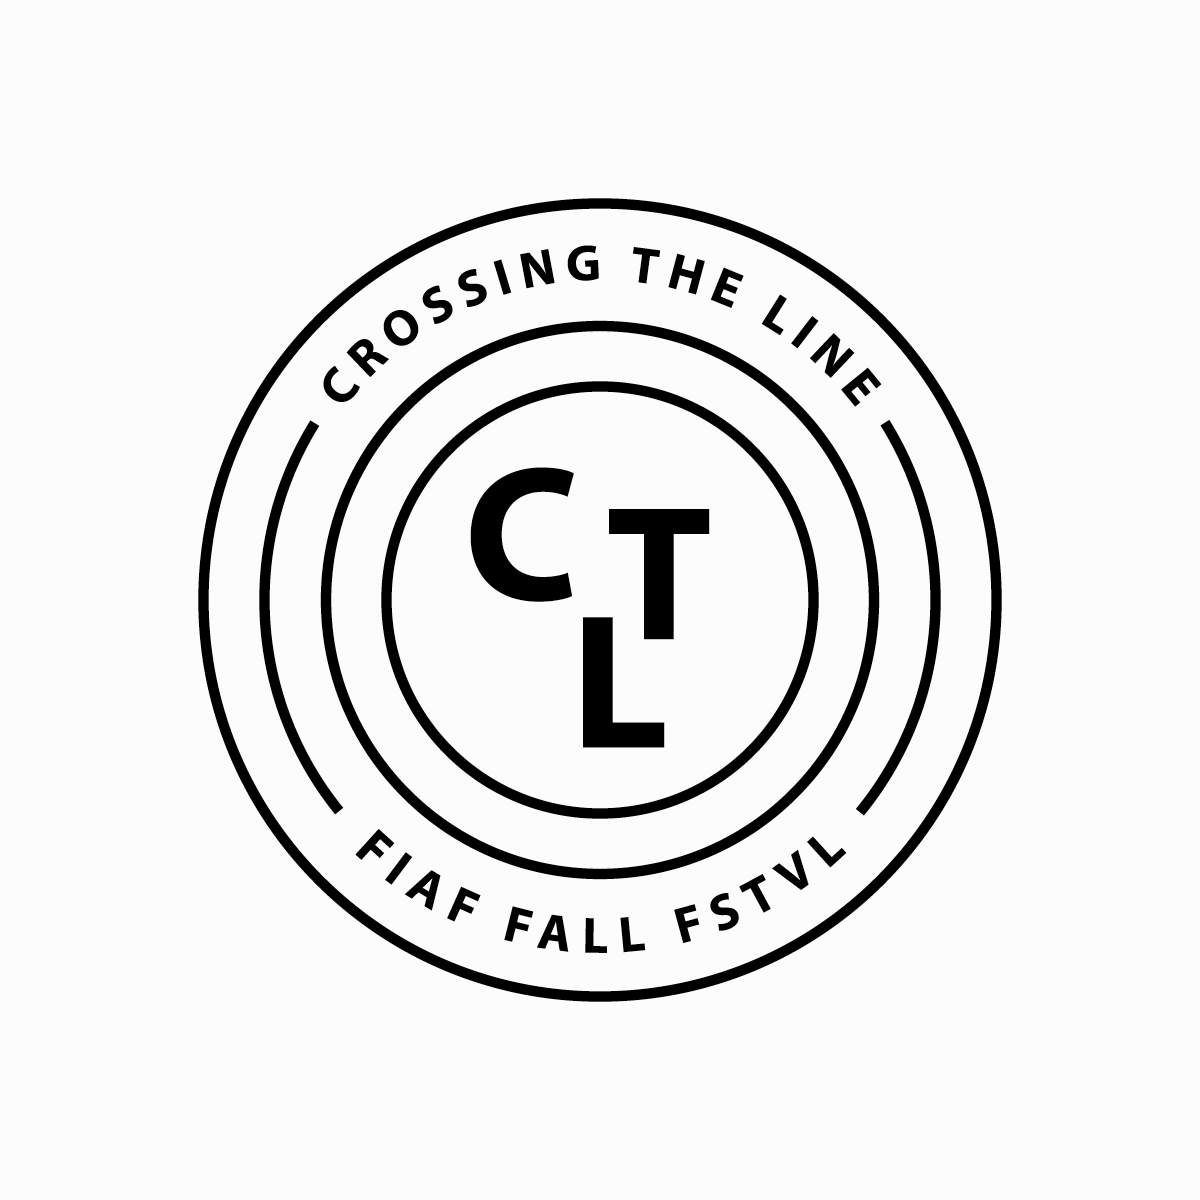 Logo & branding for annual fall arts festival  Crossing the Line . 2013, New York City, USA.  View Project